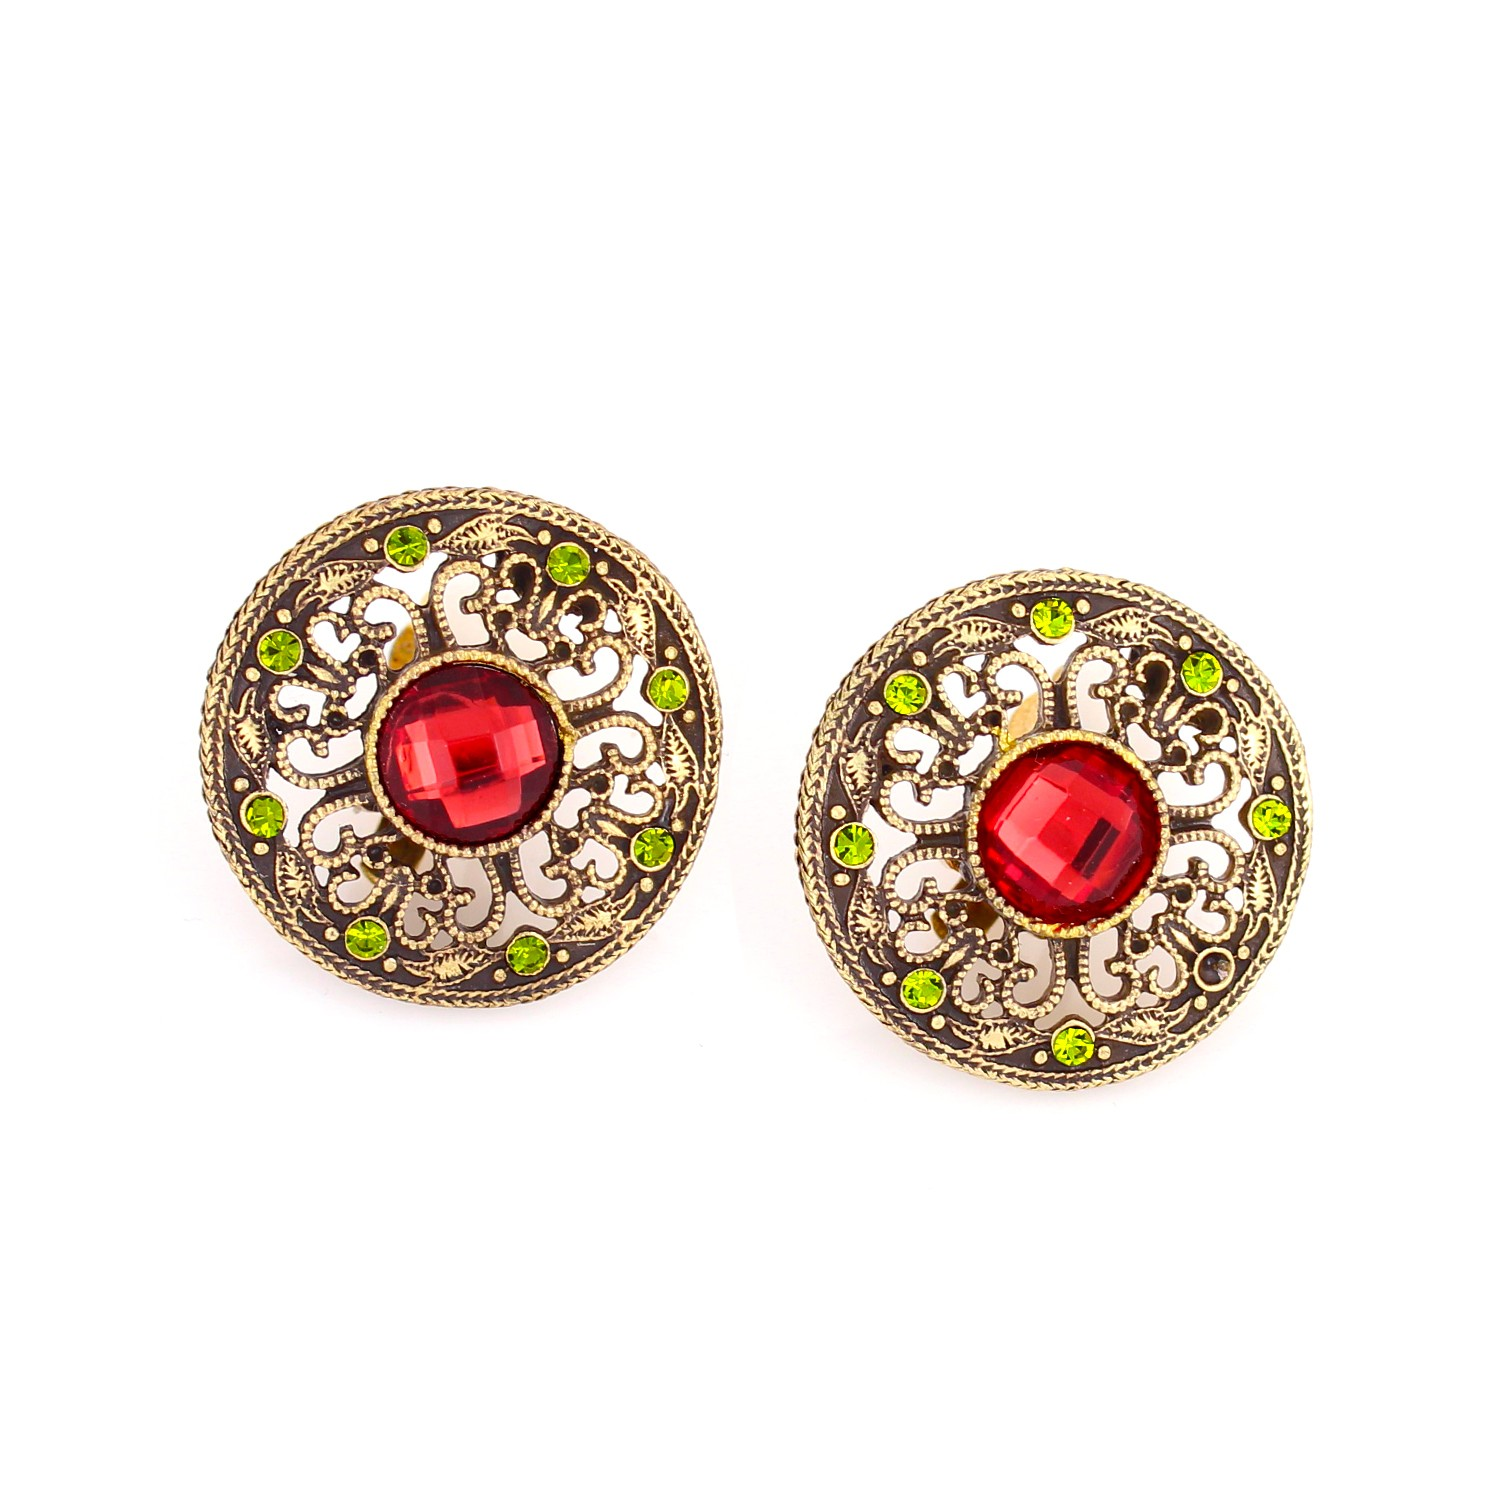 Tazza Women S Gold Red Crystal Clip On Earrings Walmart Com